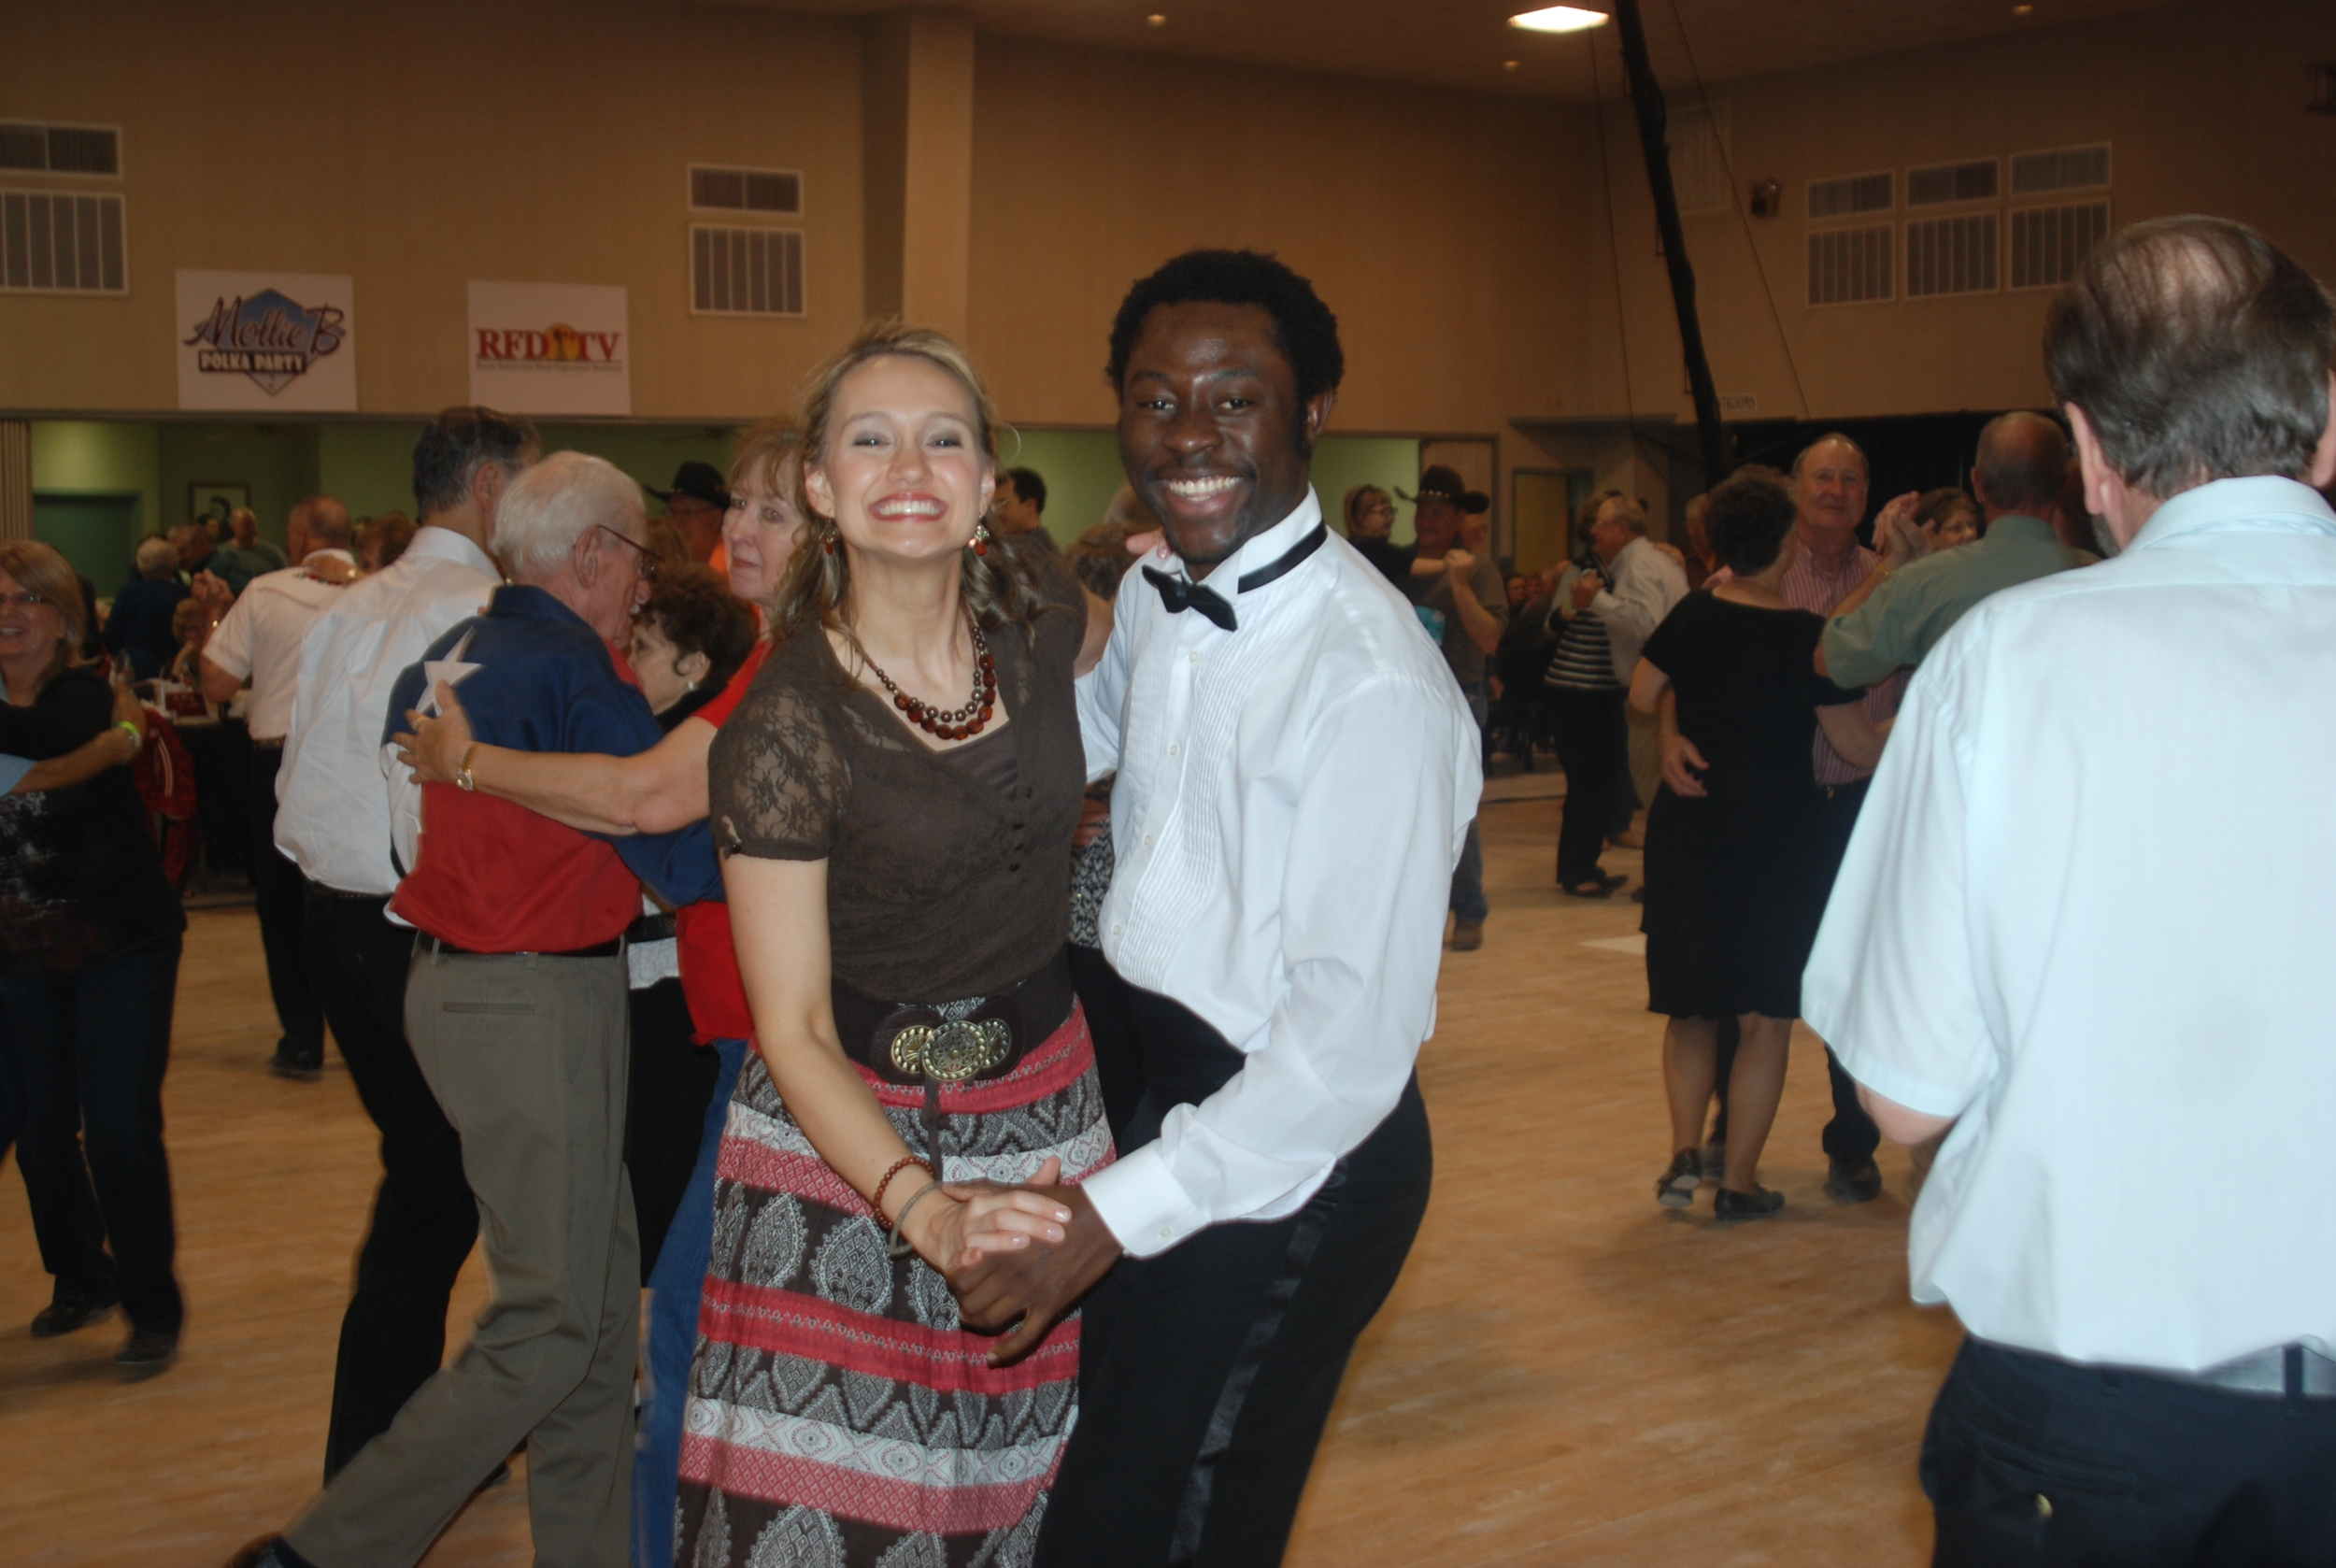 'damilare and Mollie B dancing at the Mollie B Polka Party Ennis, TX - Day 2